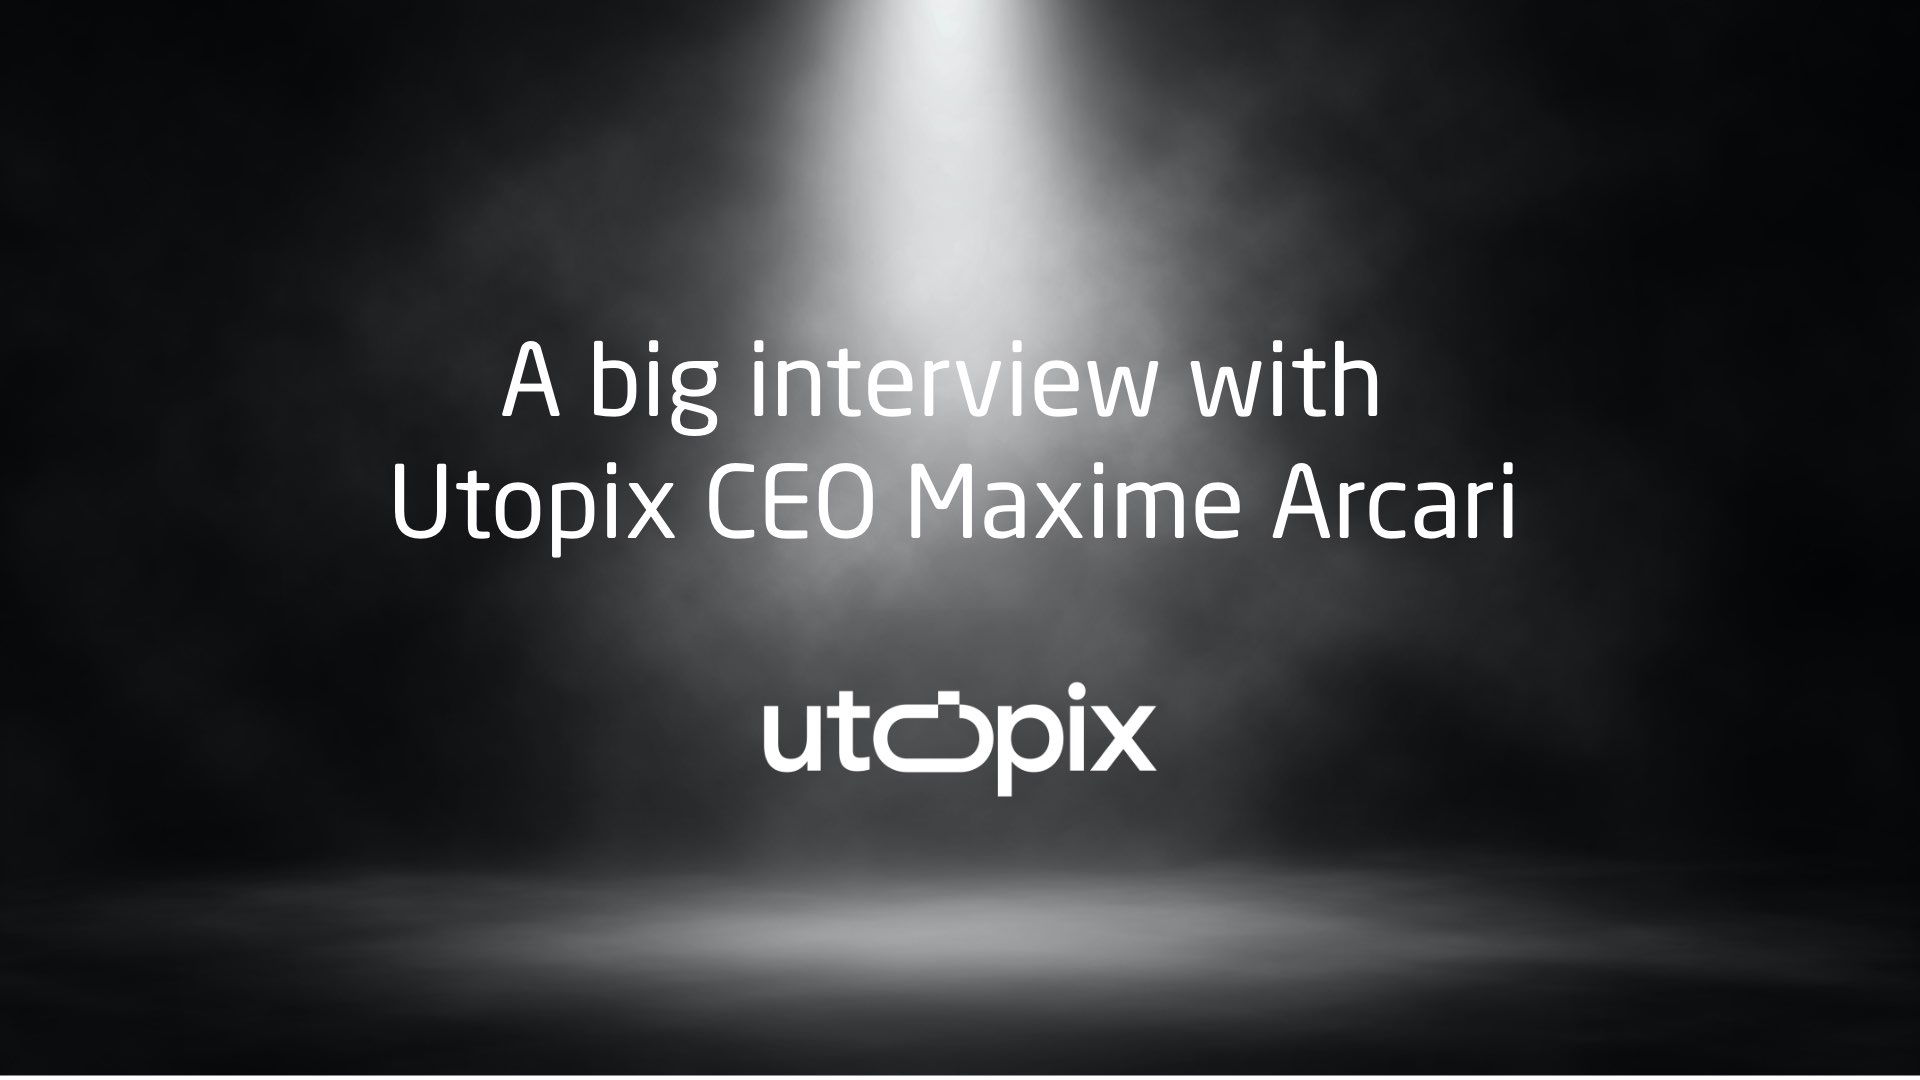 A big interview with Utopix CEO Maxime Arcari